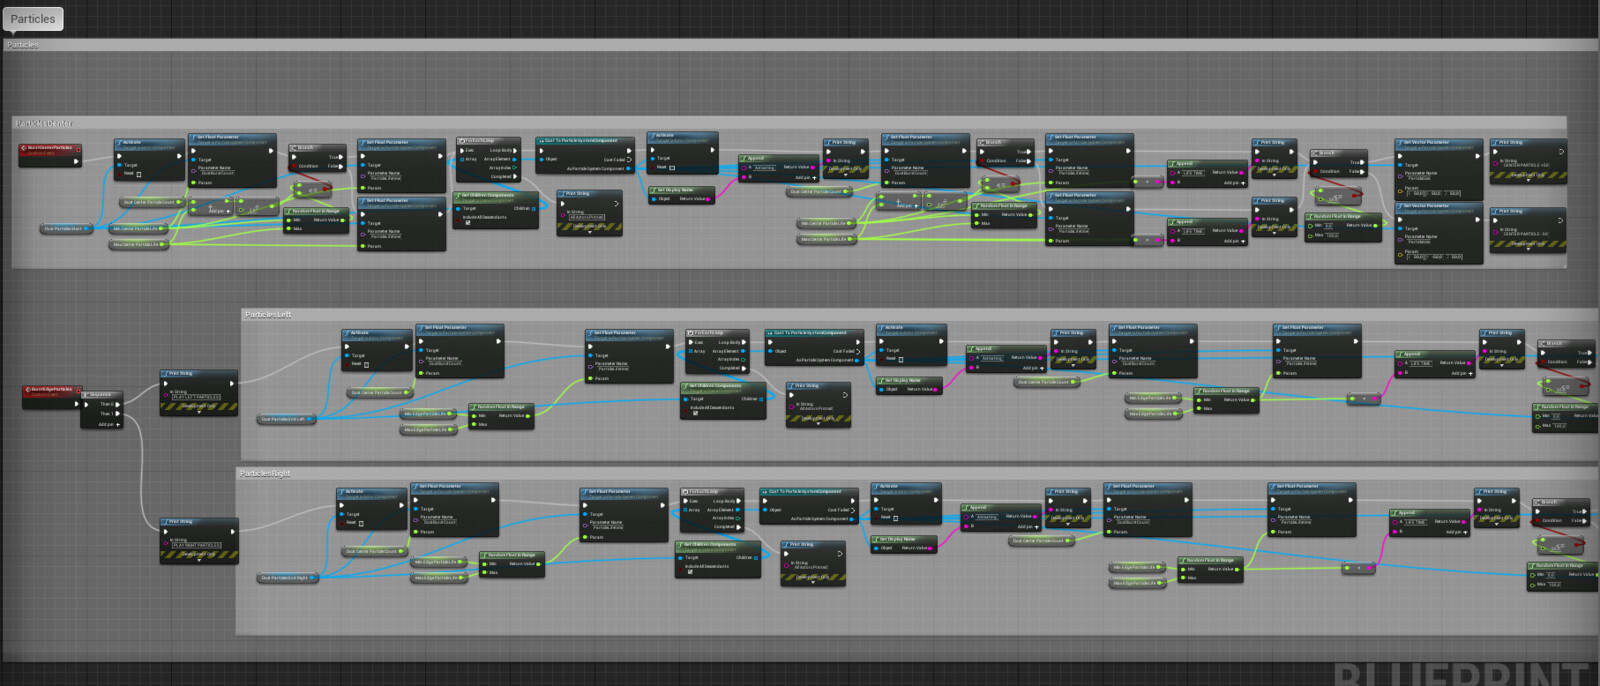 The blueprint system controlling and triggering the particles at set times